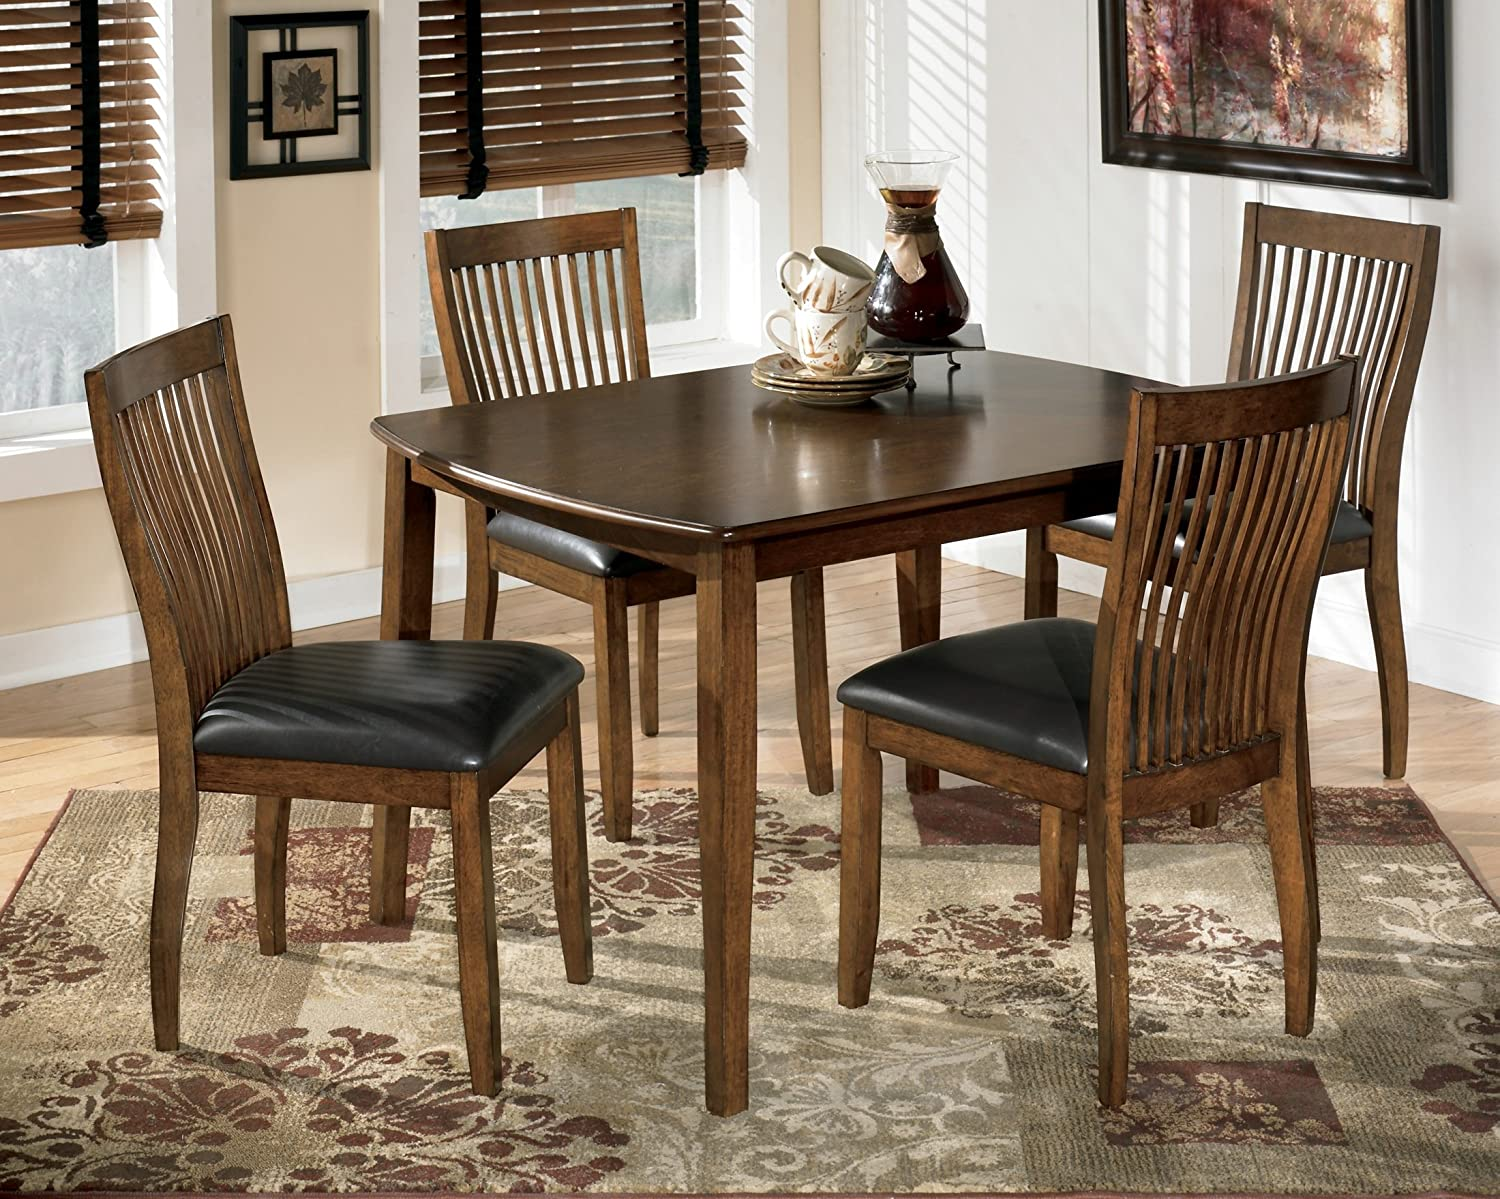 Delightful Amazon.com   Ashley D293 225 Stuman Rectangle Dining Room Table Set   Table  U0026 Chair Sets